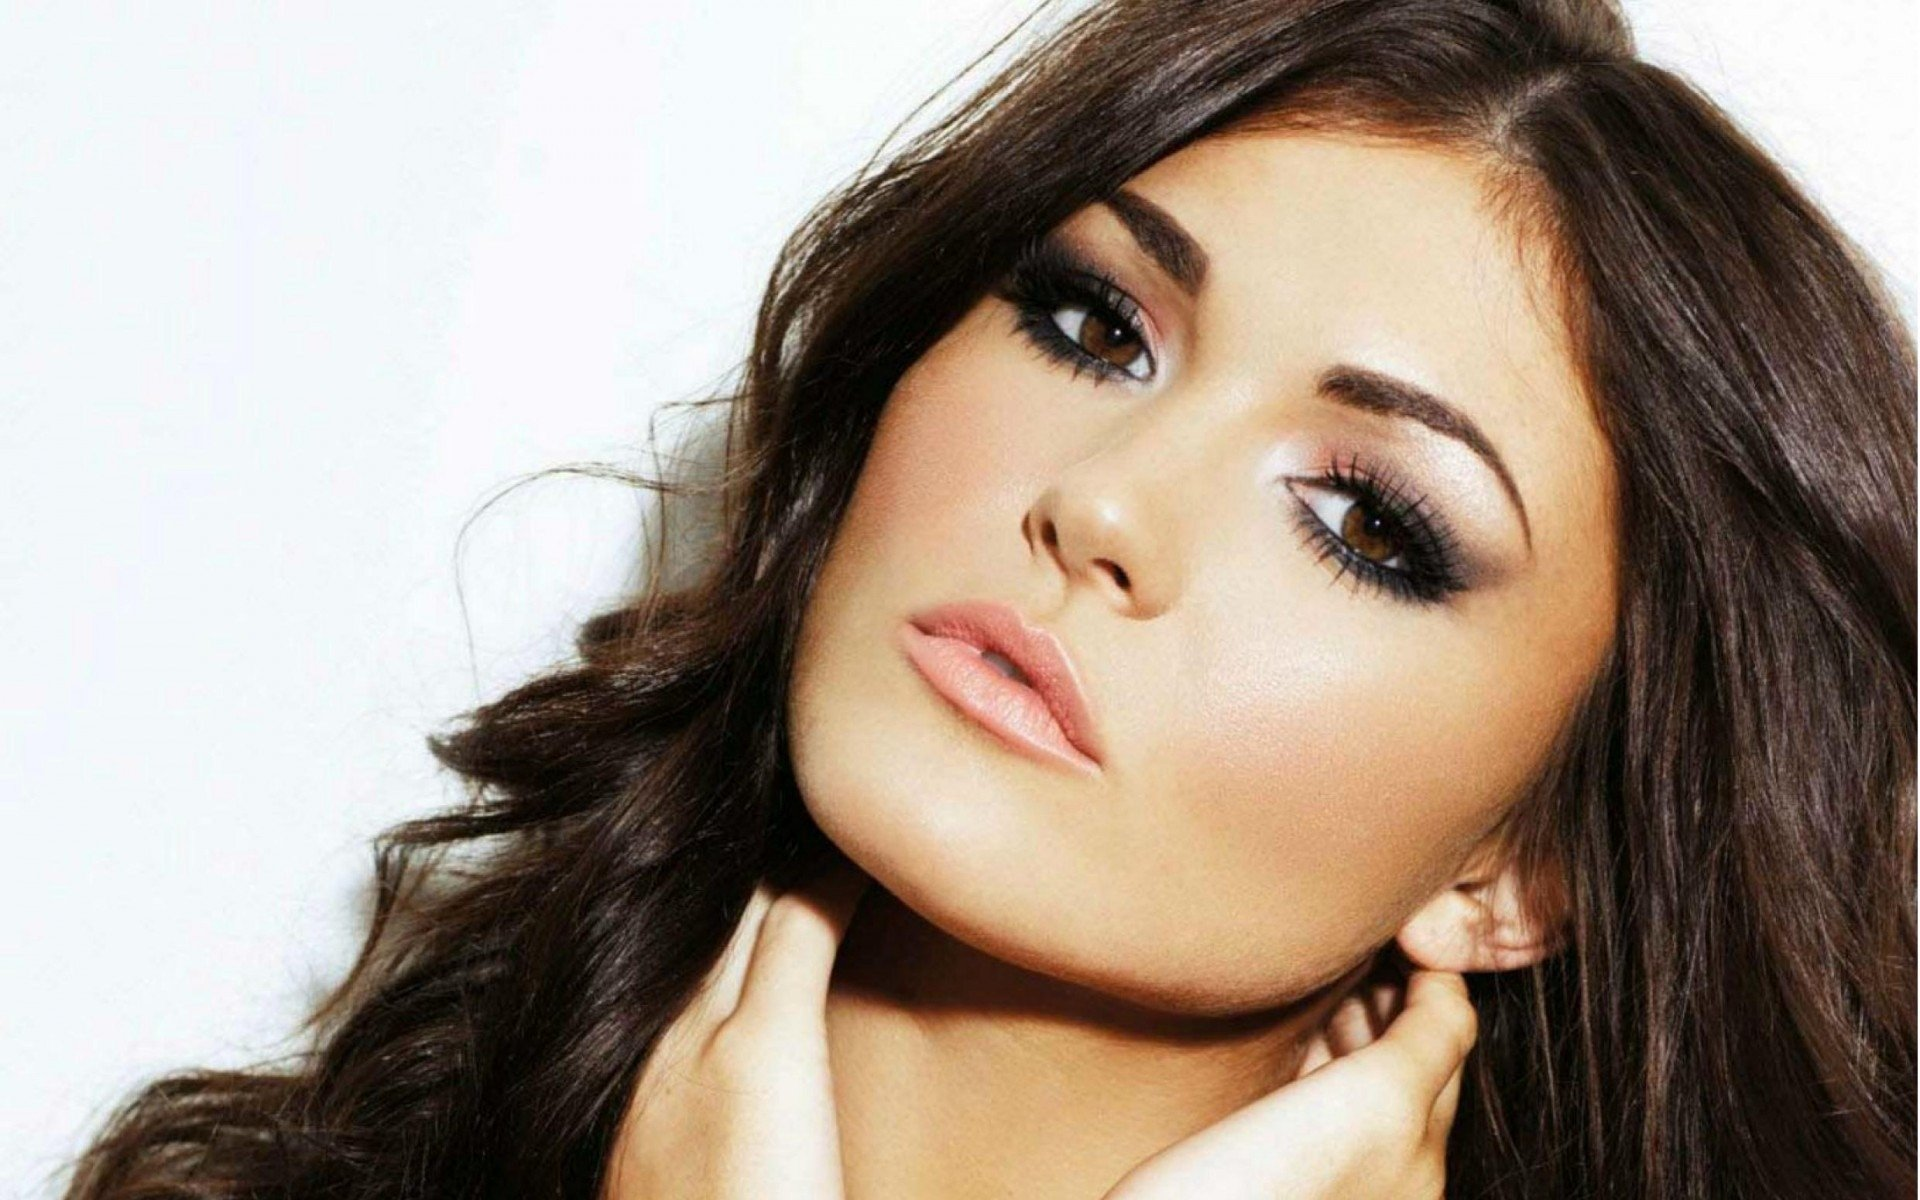 India reynolds hd wallpaper background image 1920x1200 id 365411 wallpaper abyss - Indian beautiful models hd wallpapers ...